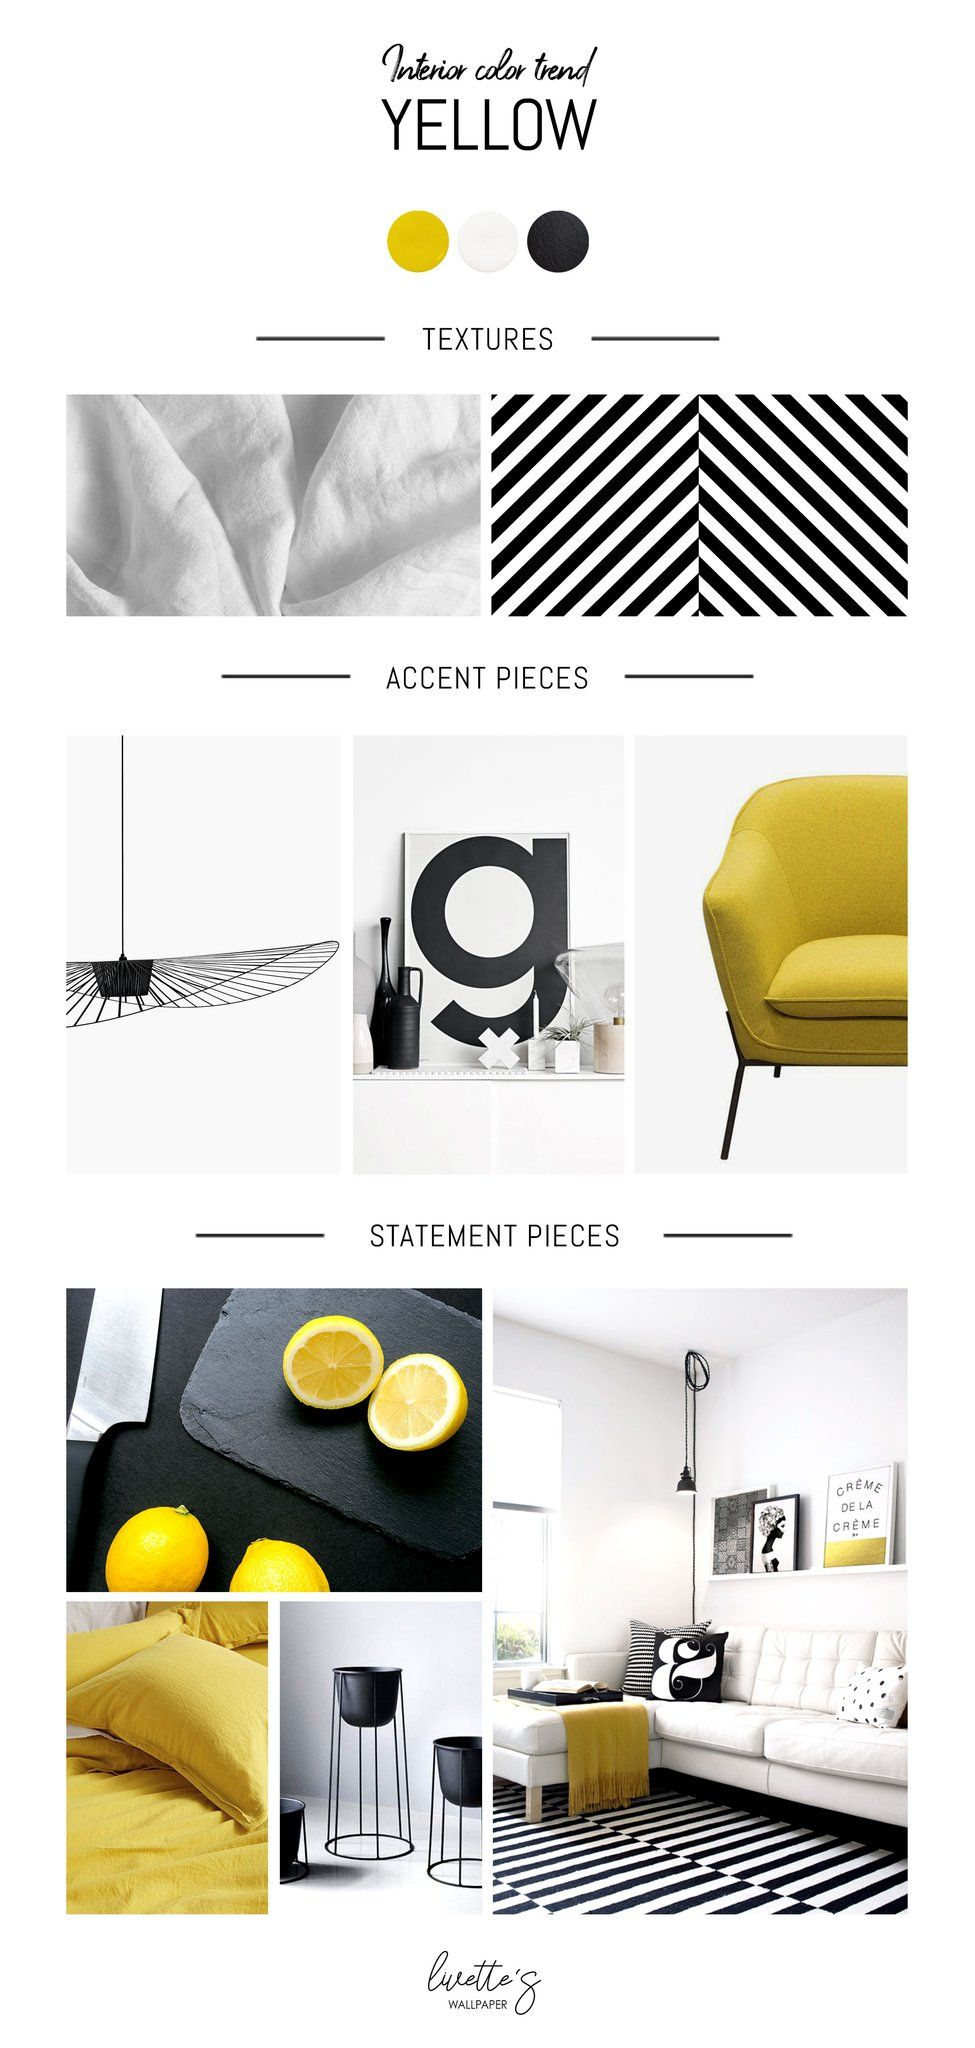 Interior color trend - yellow - Mood board Monday